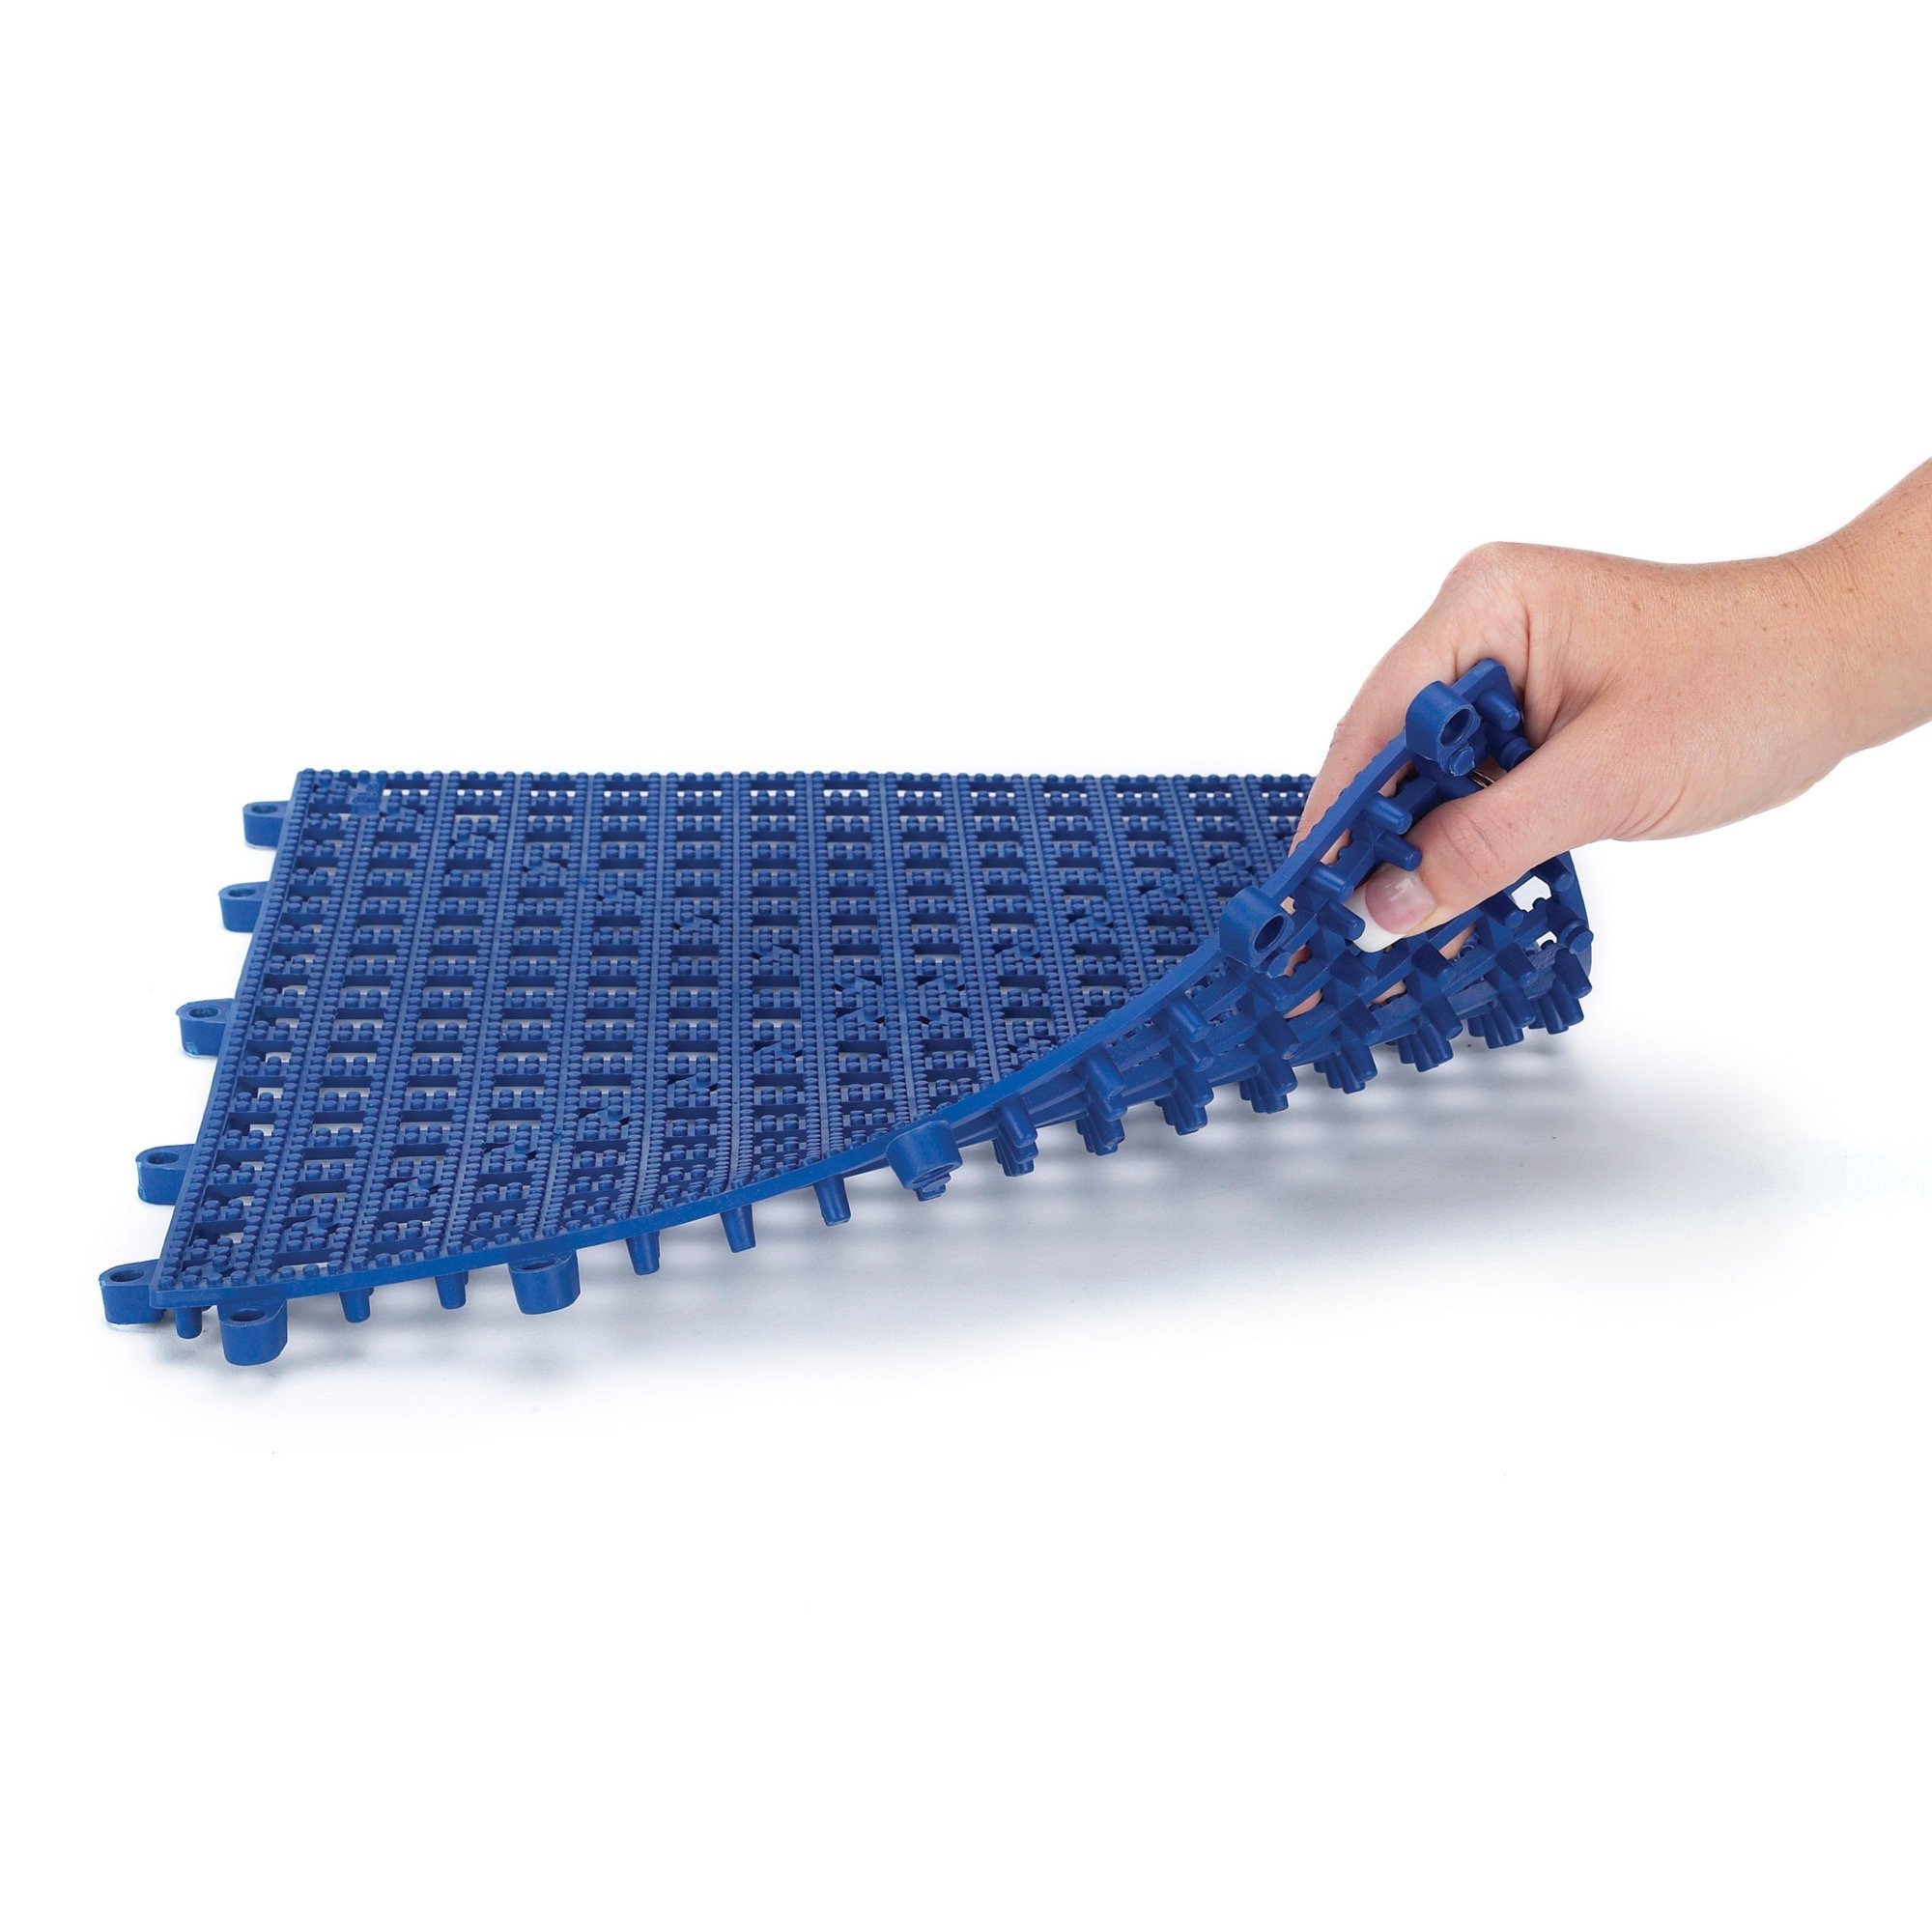 Top Performance  Floor Tiles for Groomers - Padded, Cushioned Floor Tiles Provide Unmatched Comfort and Traction for Professional Pet Groomers Throughout Their Workday, Blue by Top Performance (Image #2)